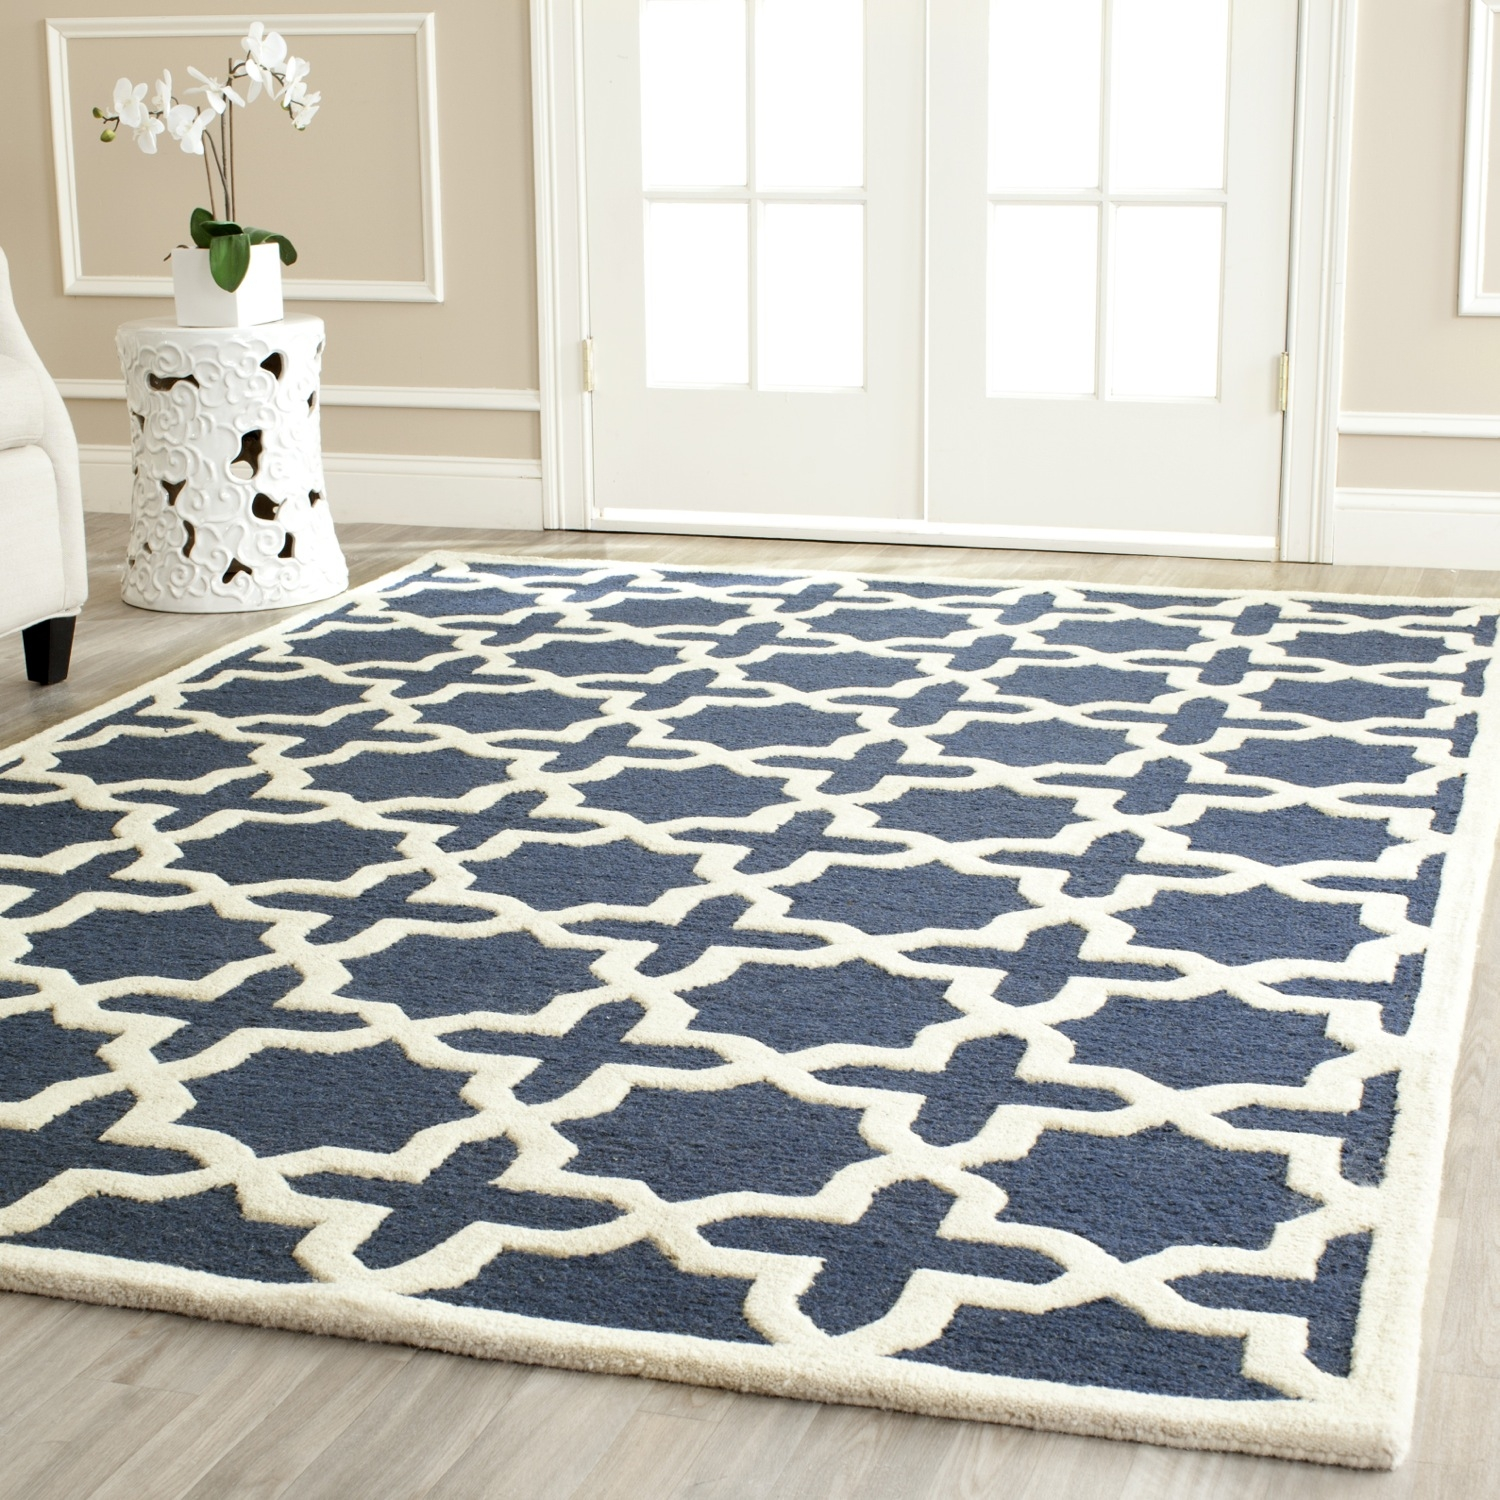 Safavieh Cambridge Navy Blue Ivory Wool Contemporary Area Rug For Wool Contemporary Area Rugs (#14 of 15)